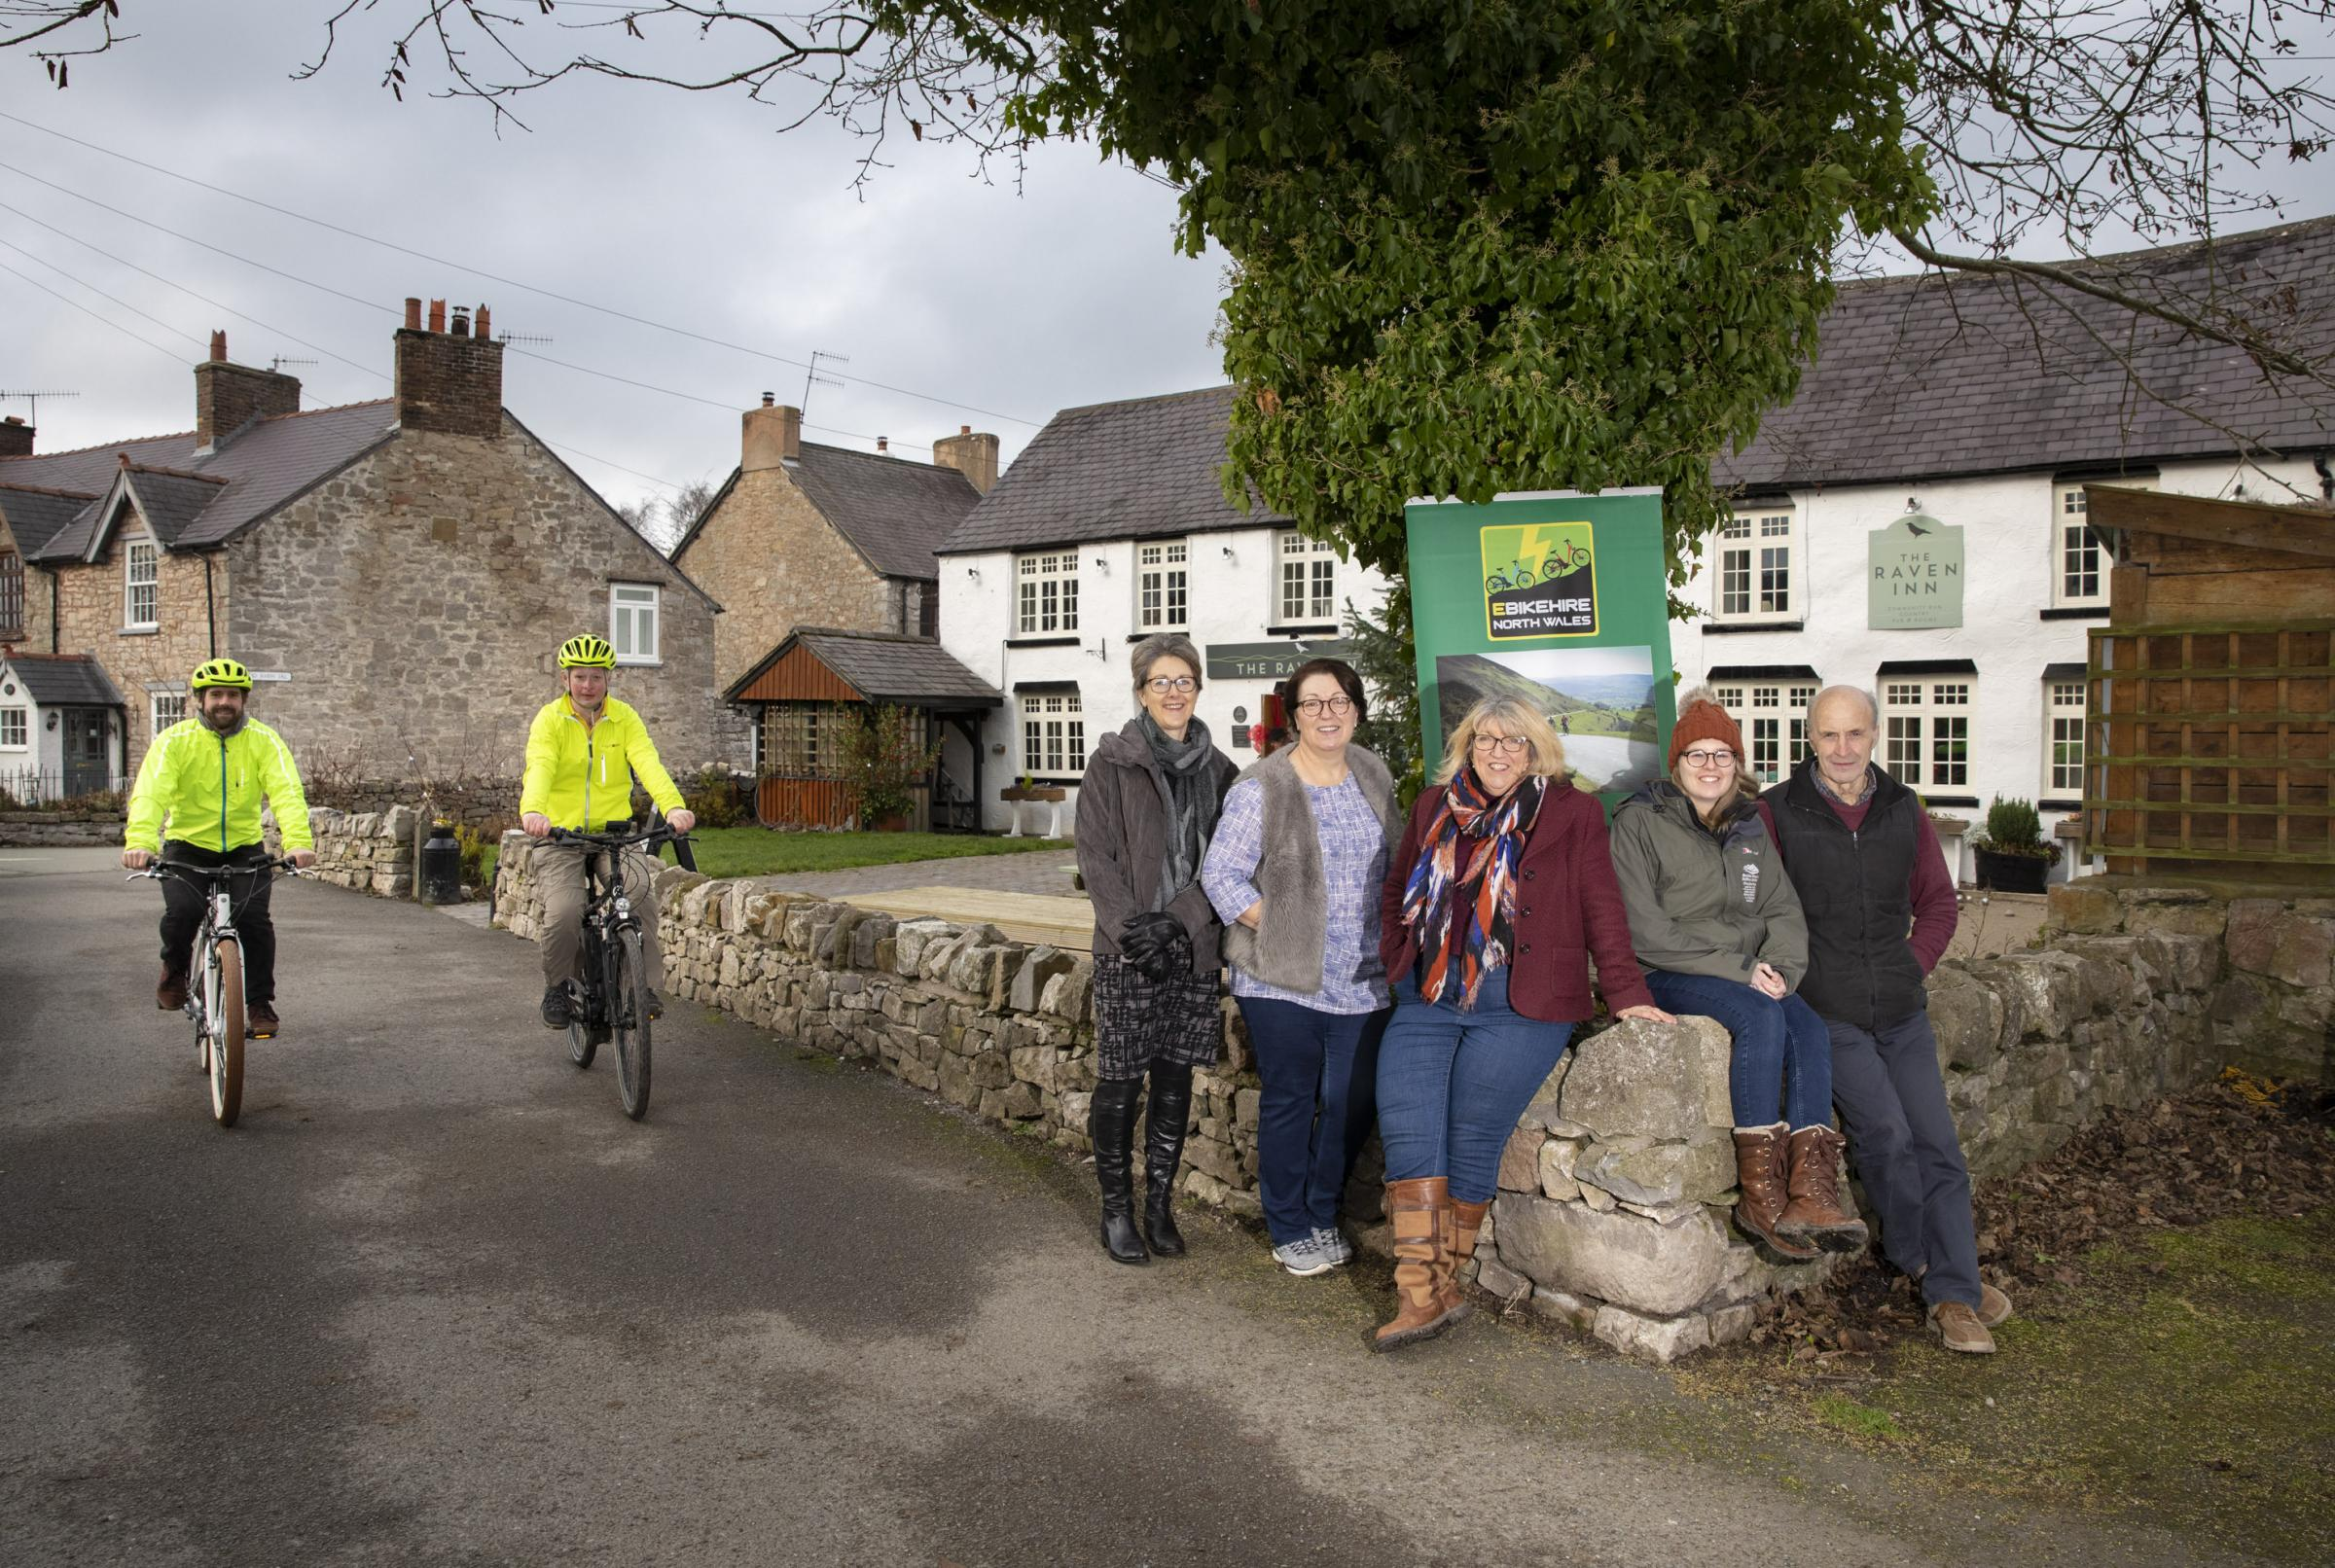 Pictured (from left): activities providers Carl Percival and Richard Haggerty, Jane Clough, Clwydian Range Tourism Group; Sue Hallows, Raven Inn; co-ordinator Julie Masters, Ceri Lloyd, Clwydian Range AONB, and Gwyn Rowlands, Cadwyn Clwyd. Picture Mandy J